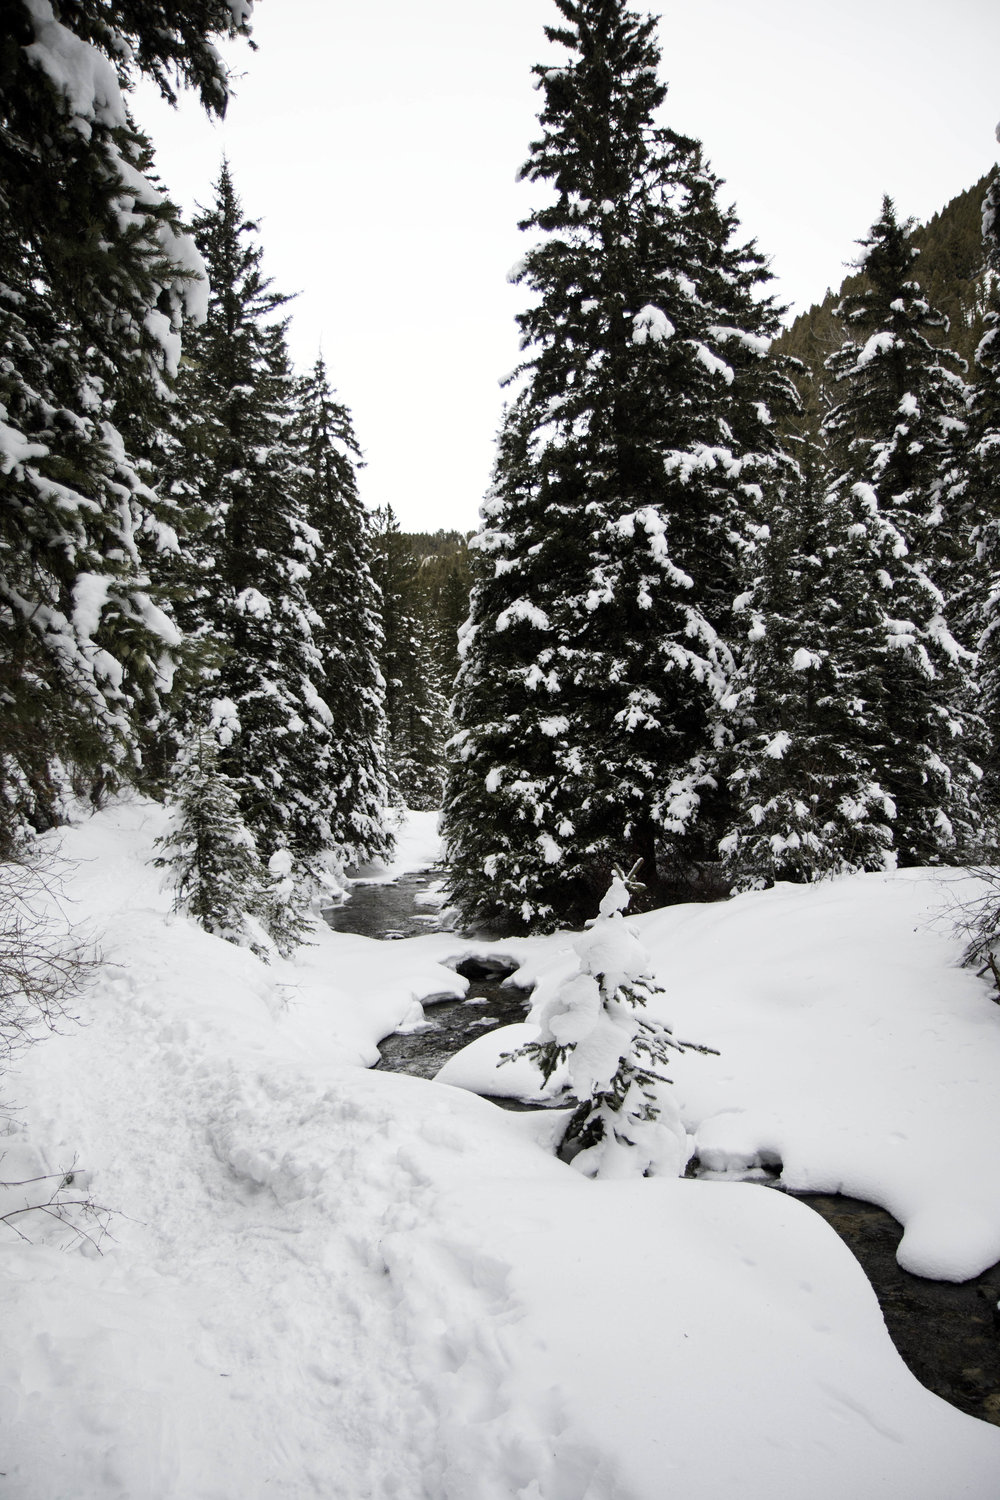 South Cottonwood Creek Trail. A beautiful winter hike near Bozeman, MT